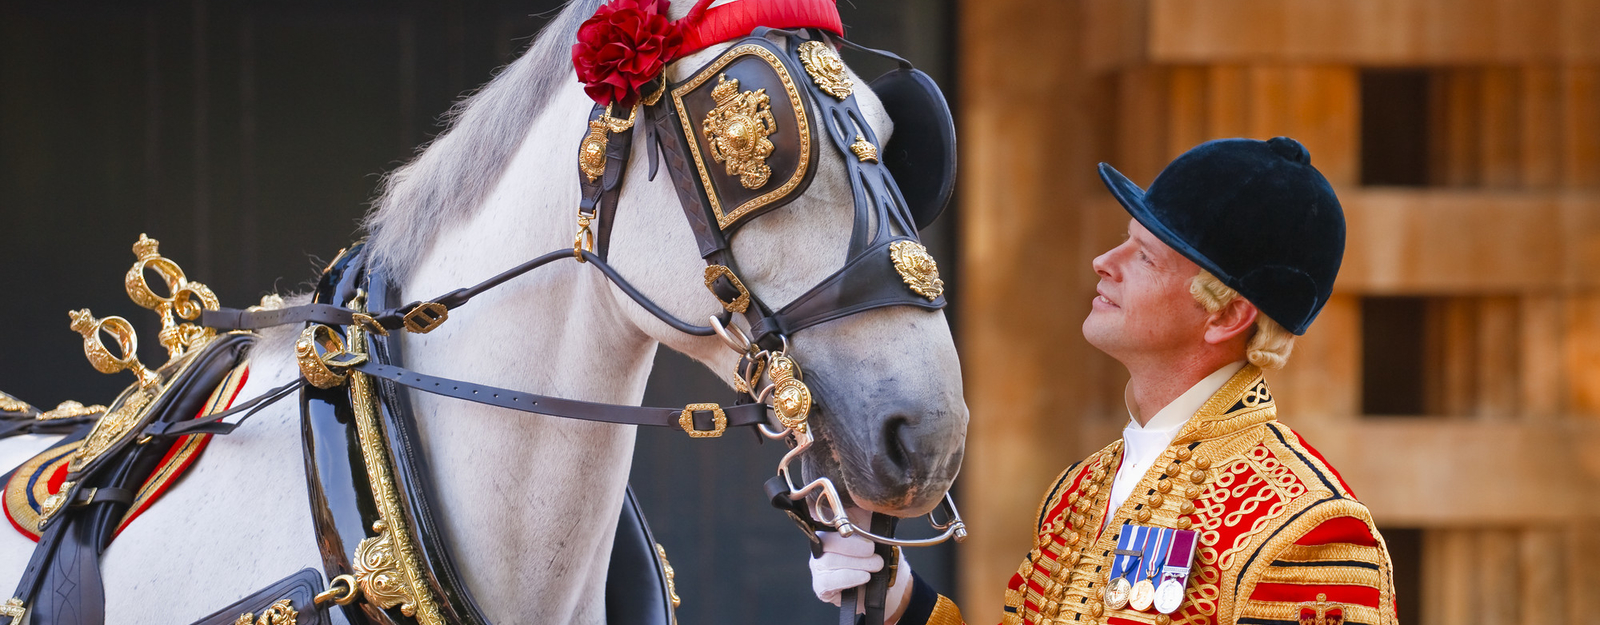 Horse dressed in Royal Mews finery with rider in uniform